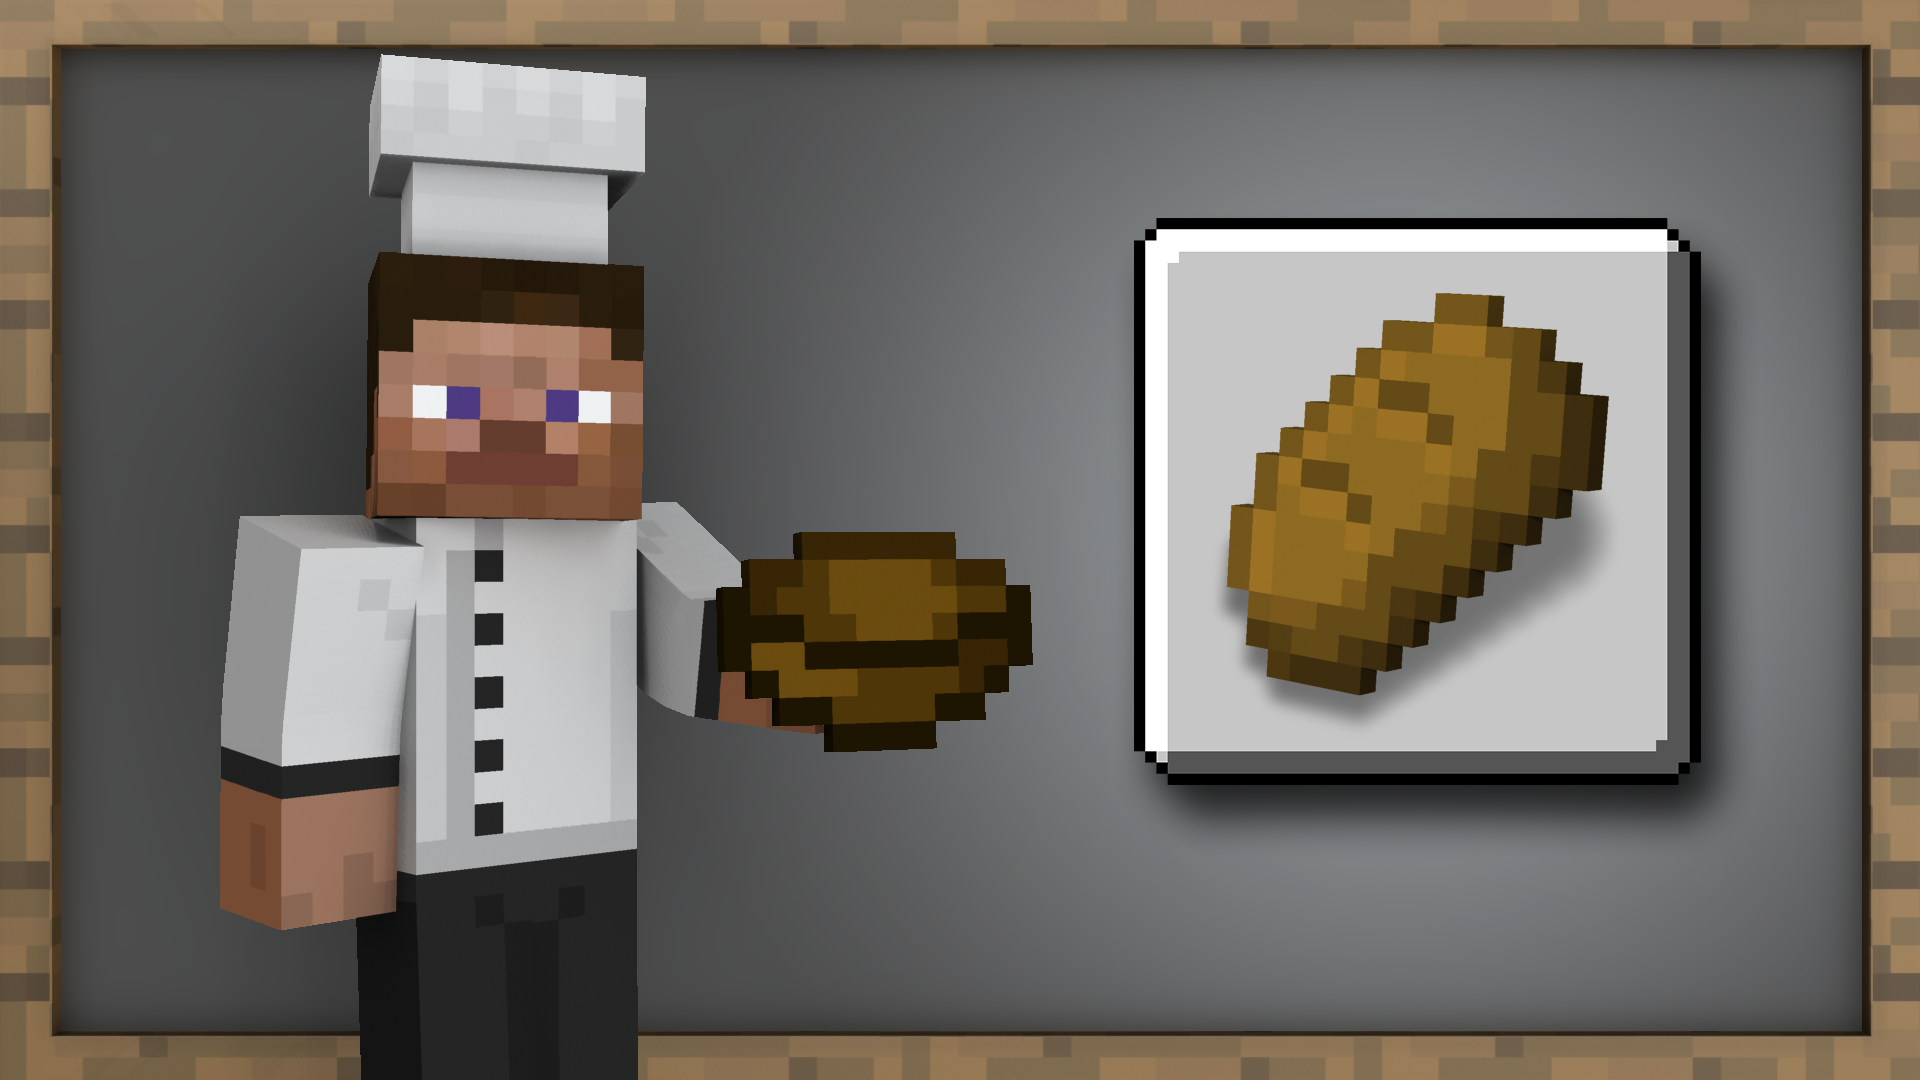 Bake Bread achievement for Minecraft on Windows Phone